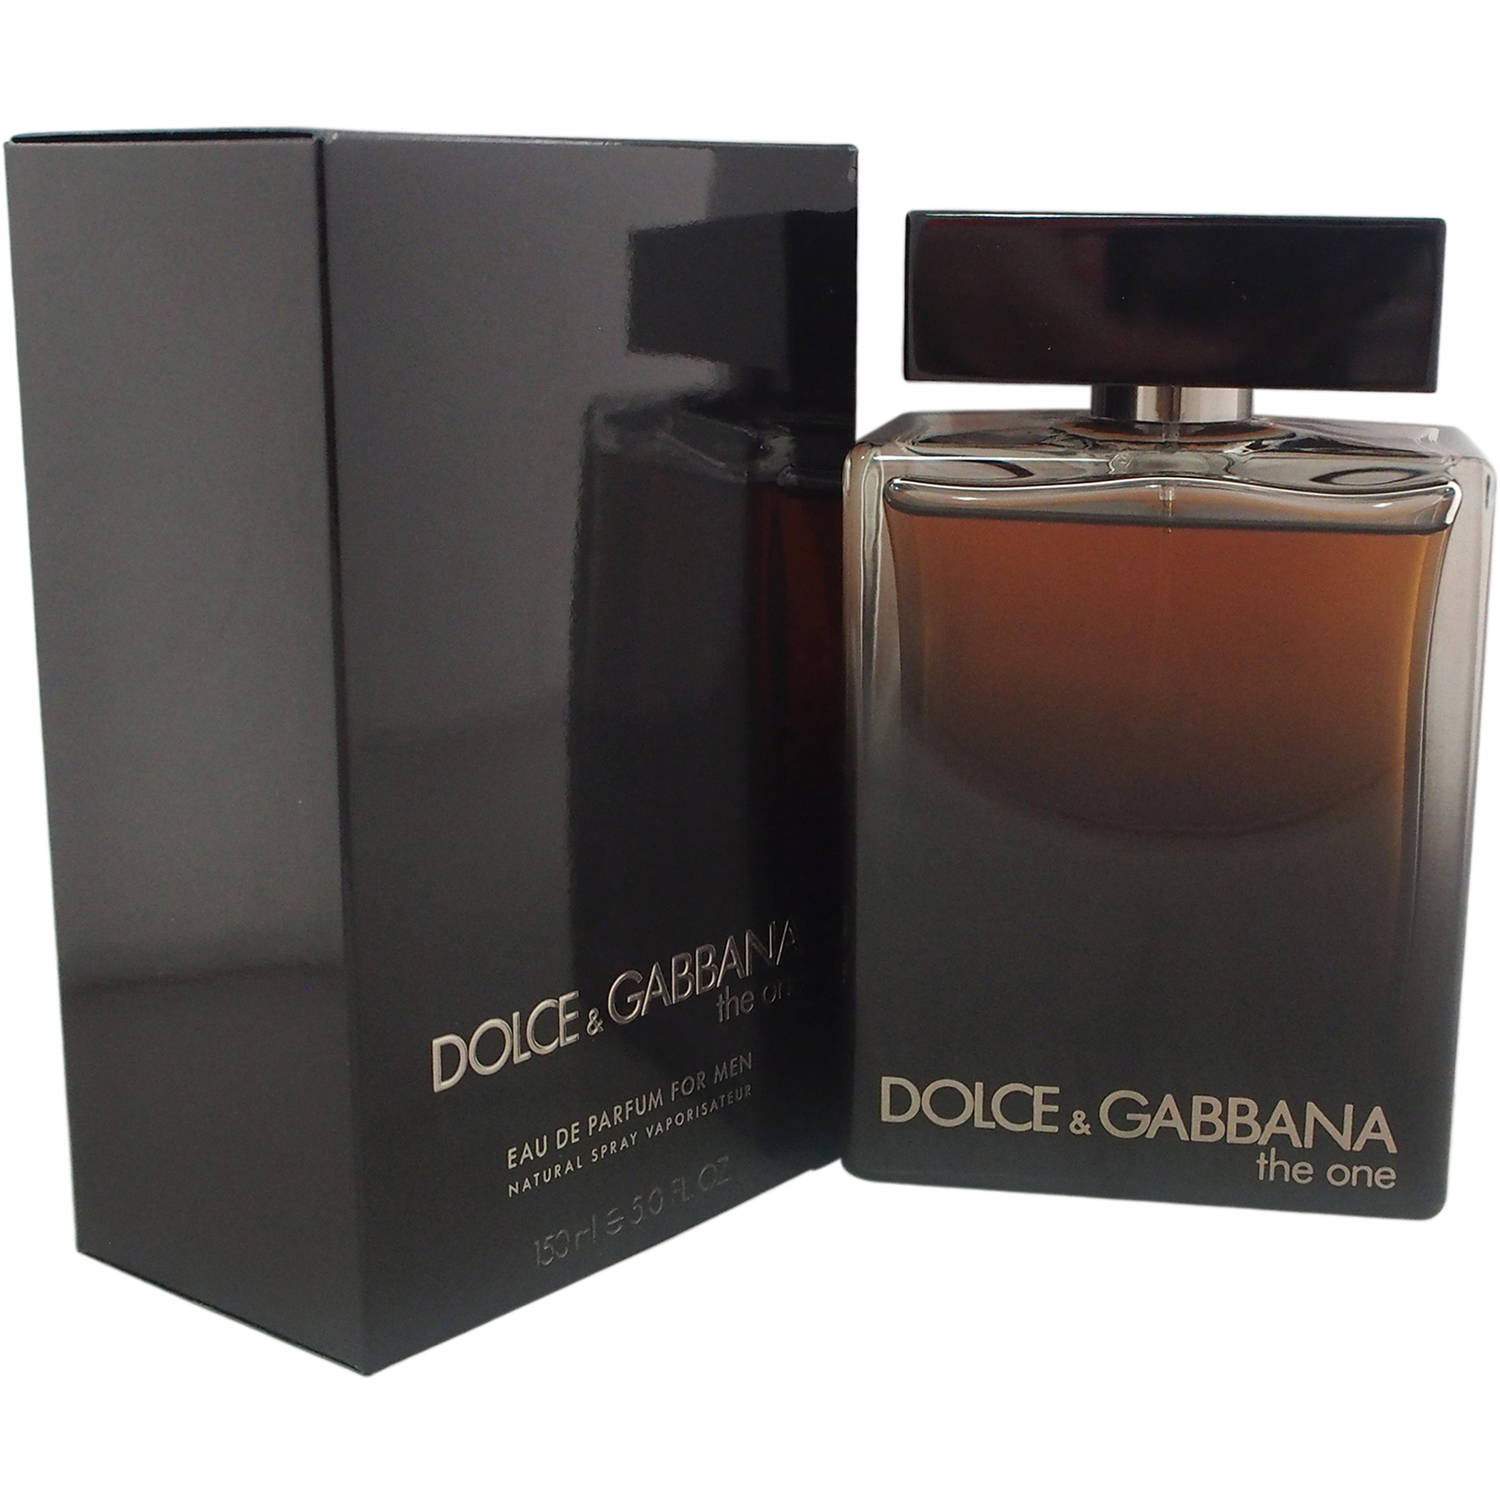 The One by Dolce & Gabbana for Men - 5 oz EDP Spray